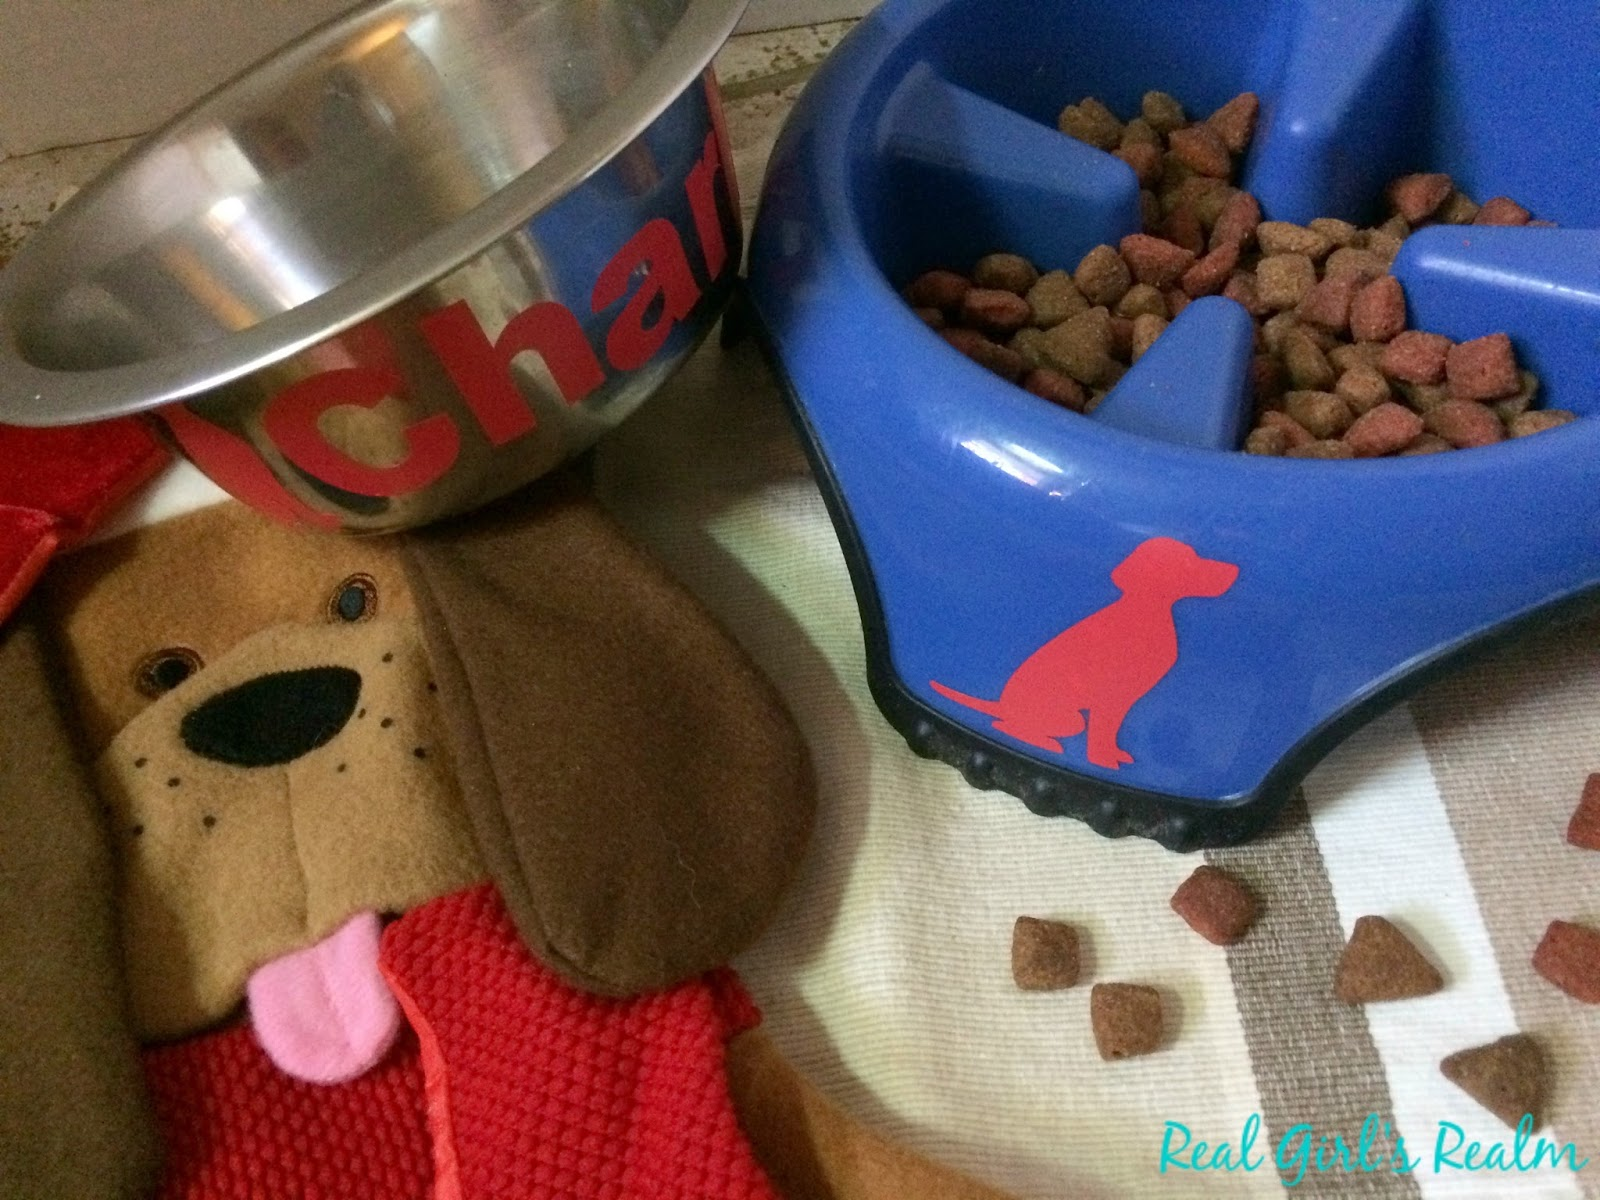 real girl s realm personalized dog bowl tutorial